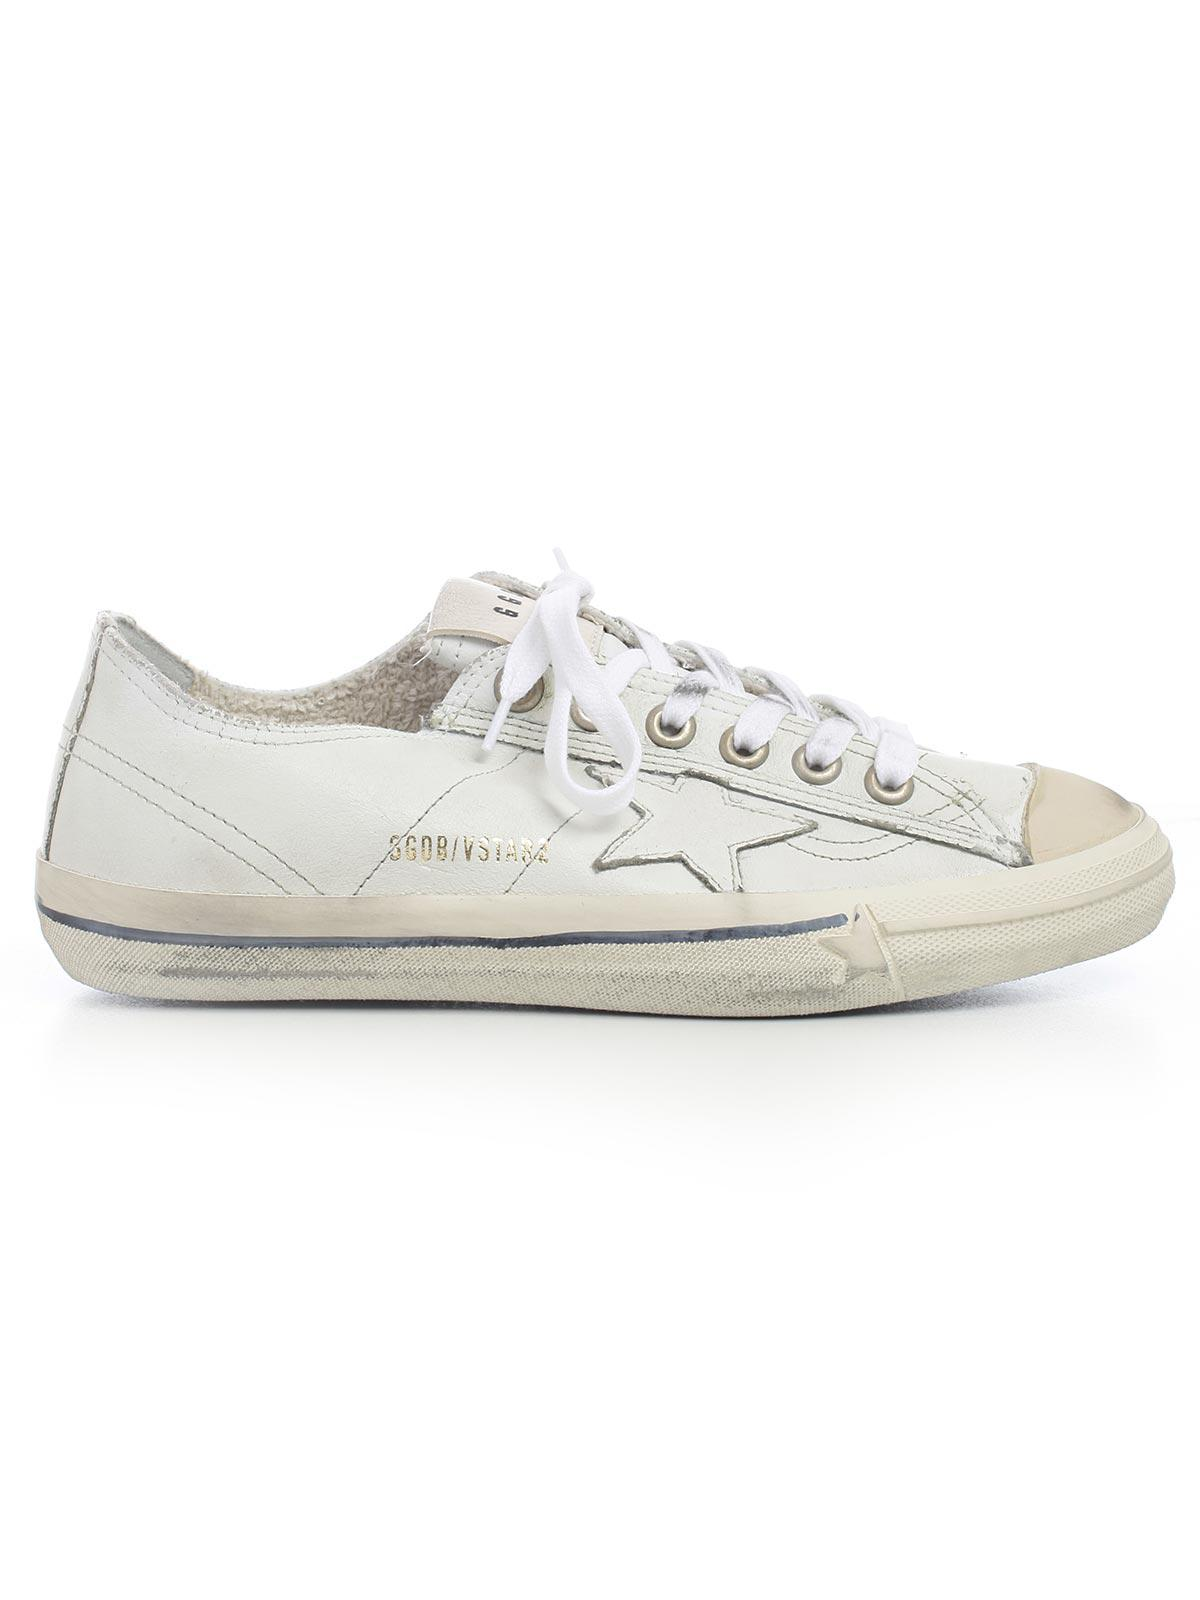 V Star Sneakers 2 - White Diesel Golden Goose bchxSIPGzO